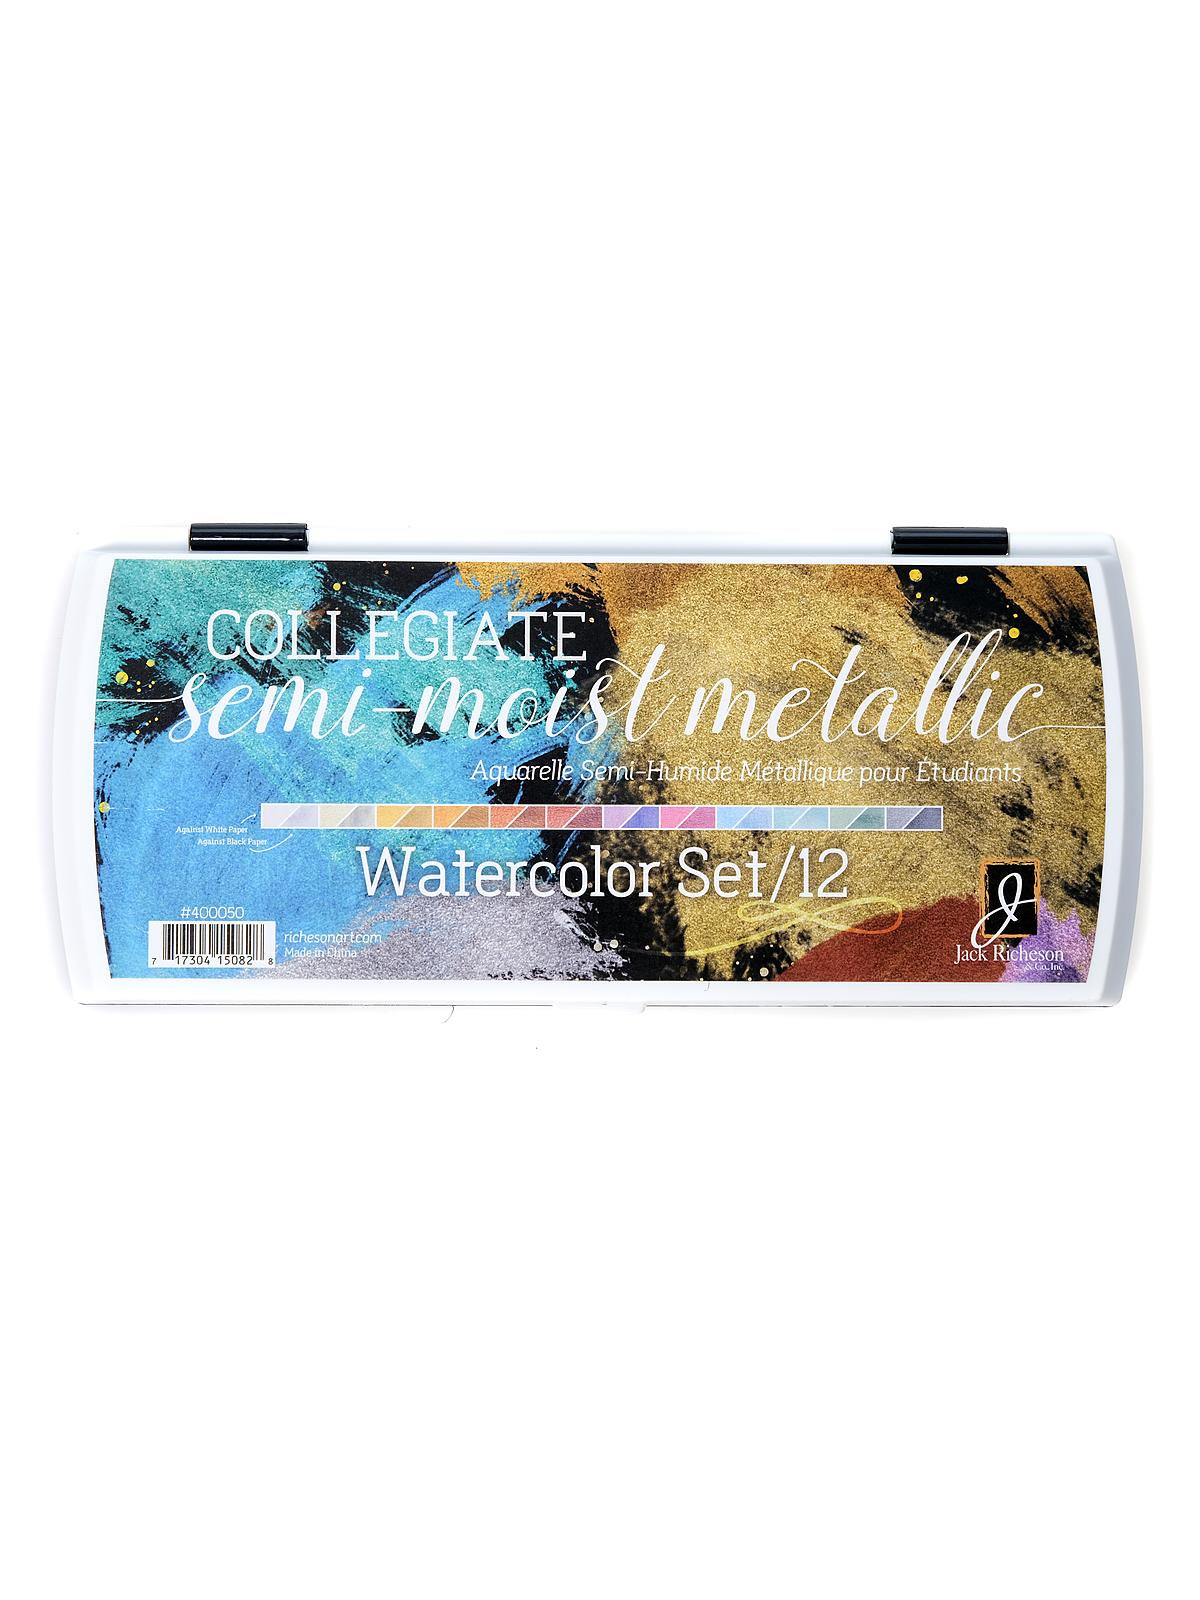 Collegiate Semi-Moist Watercolor Set